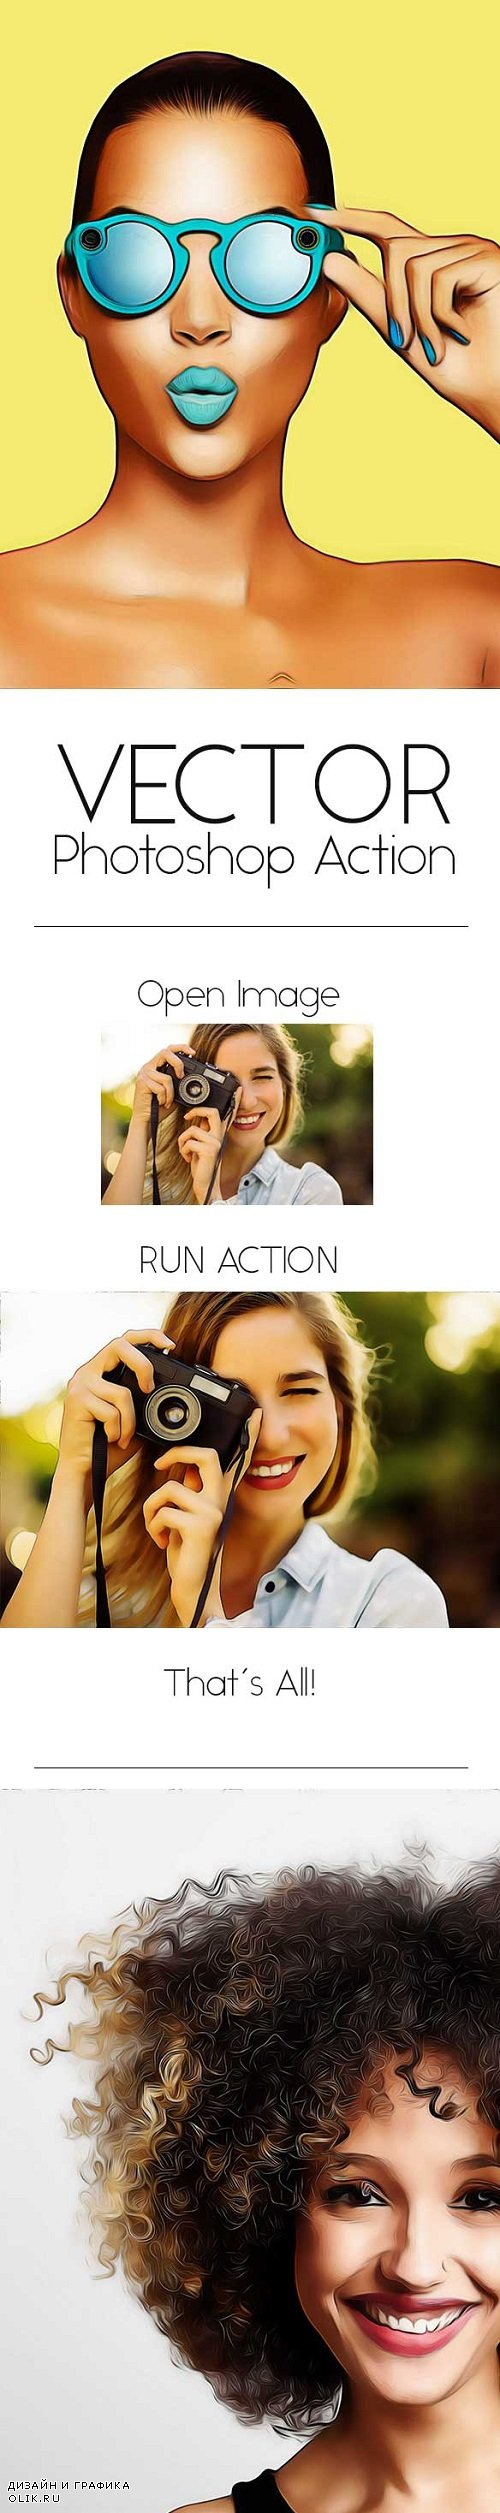 Vector Photoshop Action 20330197